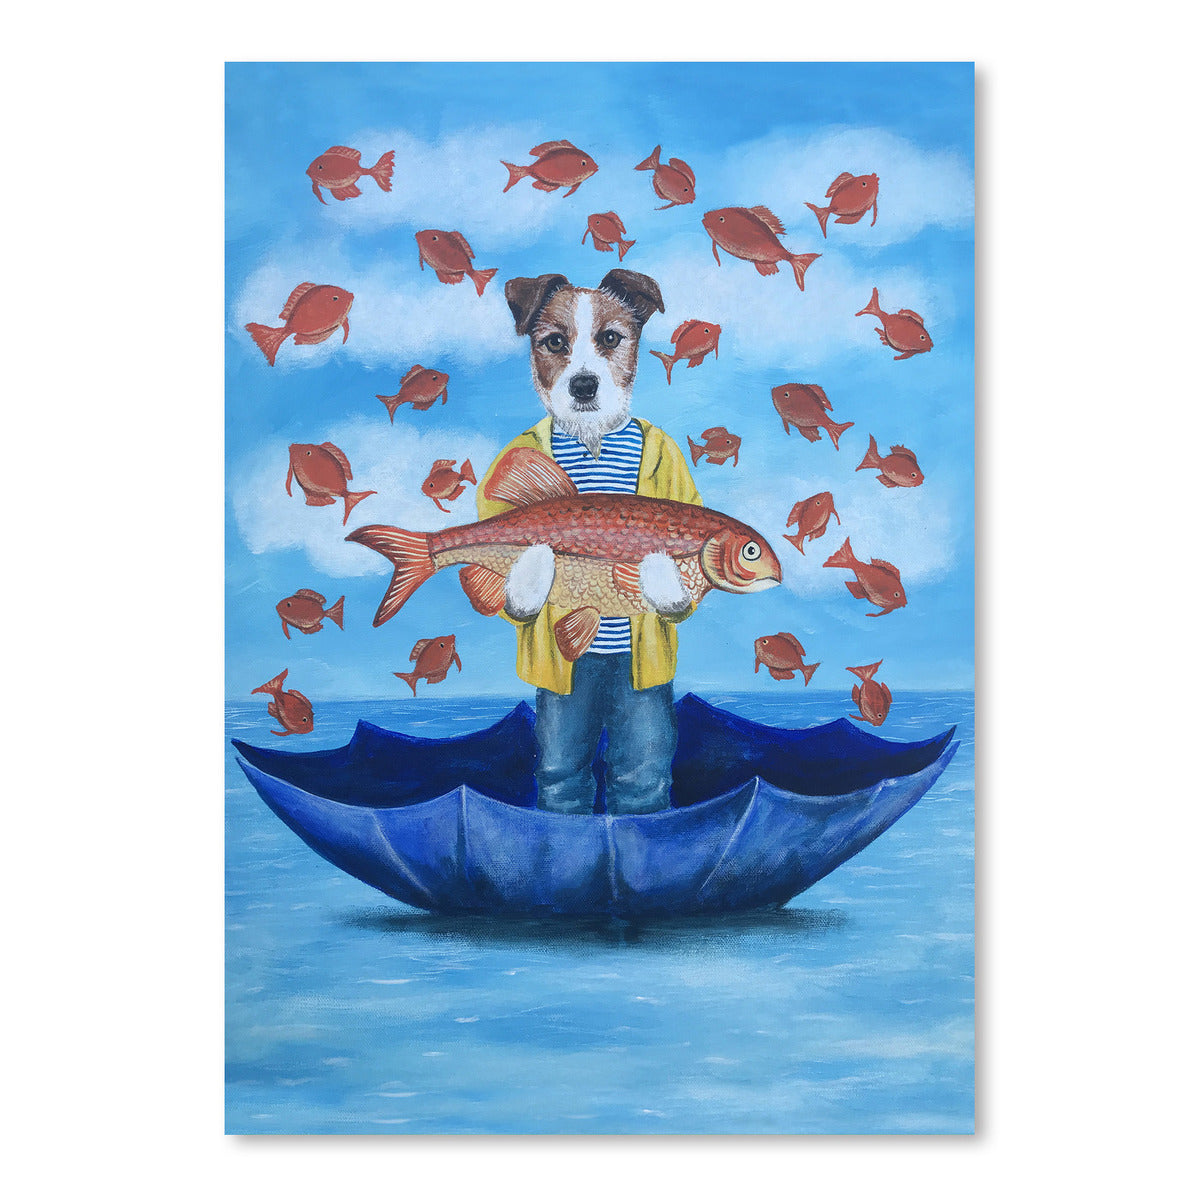 Jack Russell With Big Fish by Coco de Paris - Art Print - Americanflat